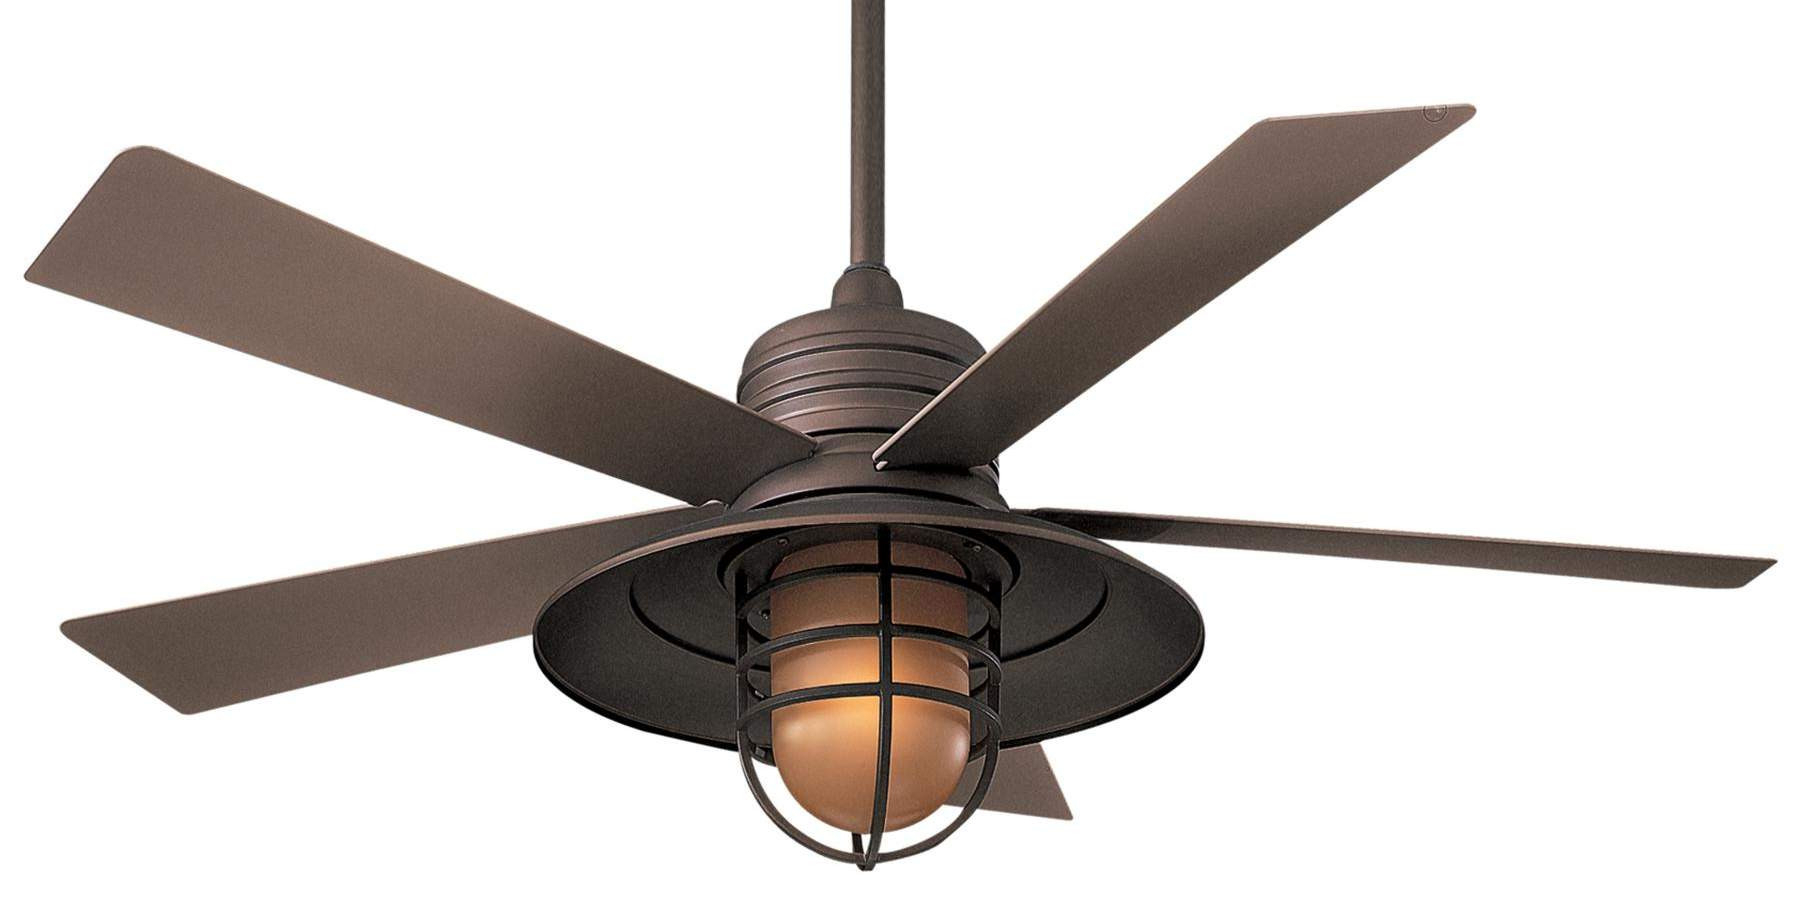 2020 Minka Aire Rainman Ceiling Fan Model F582 Orb In Oil Rubbed Intended For Rainman 5 Blade Outdoor Ceiling Fans (View 1 of 20)